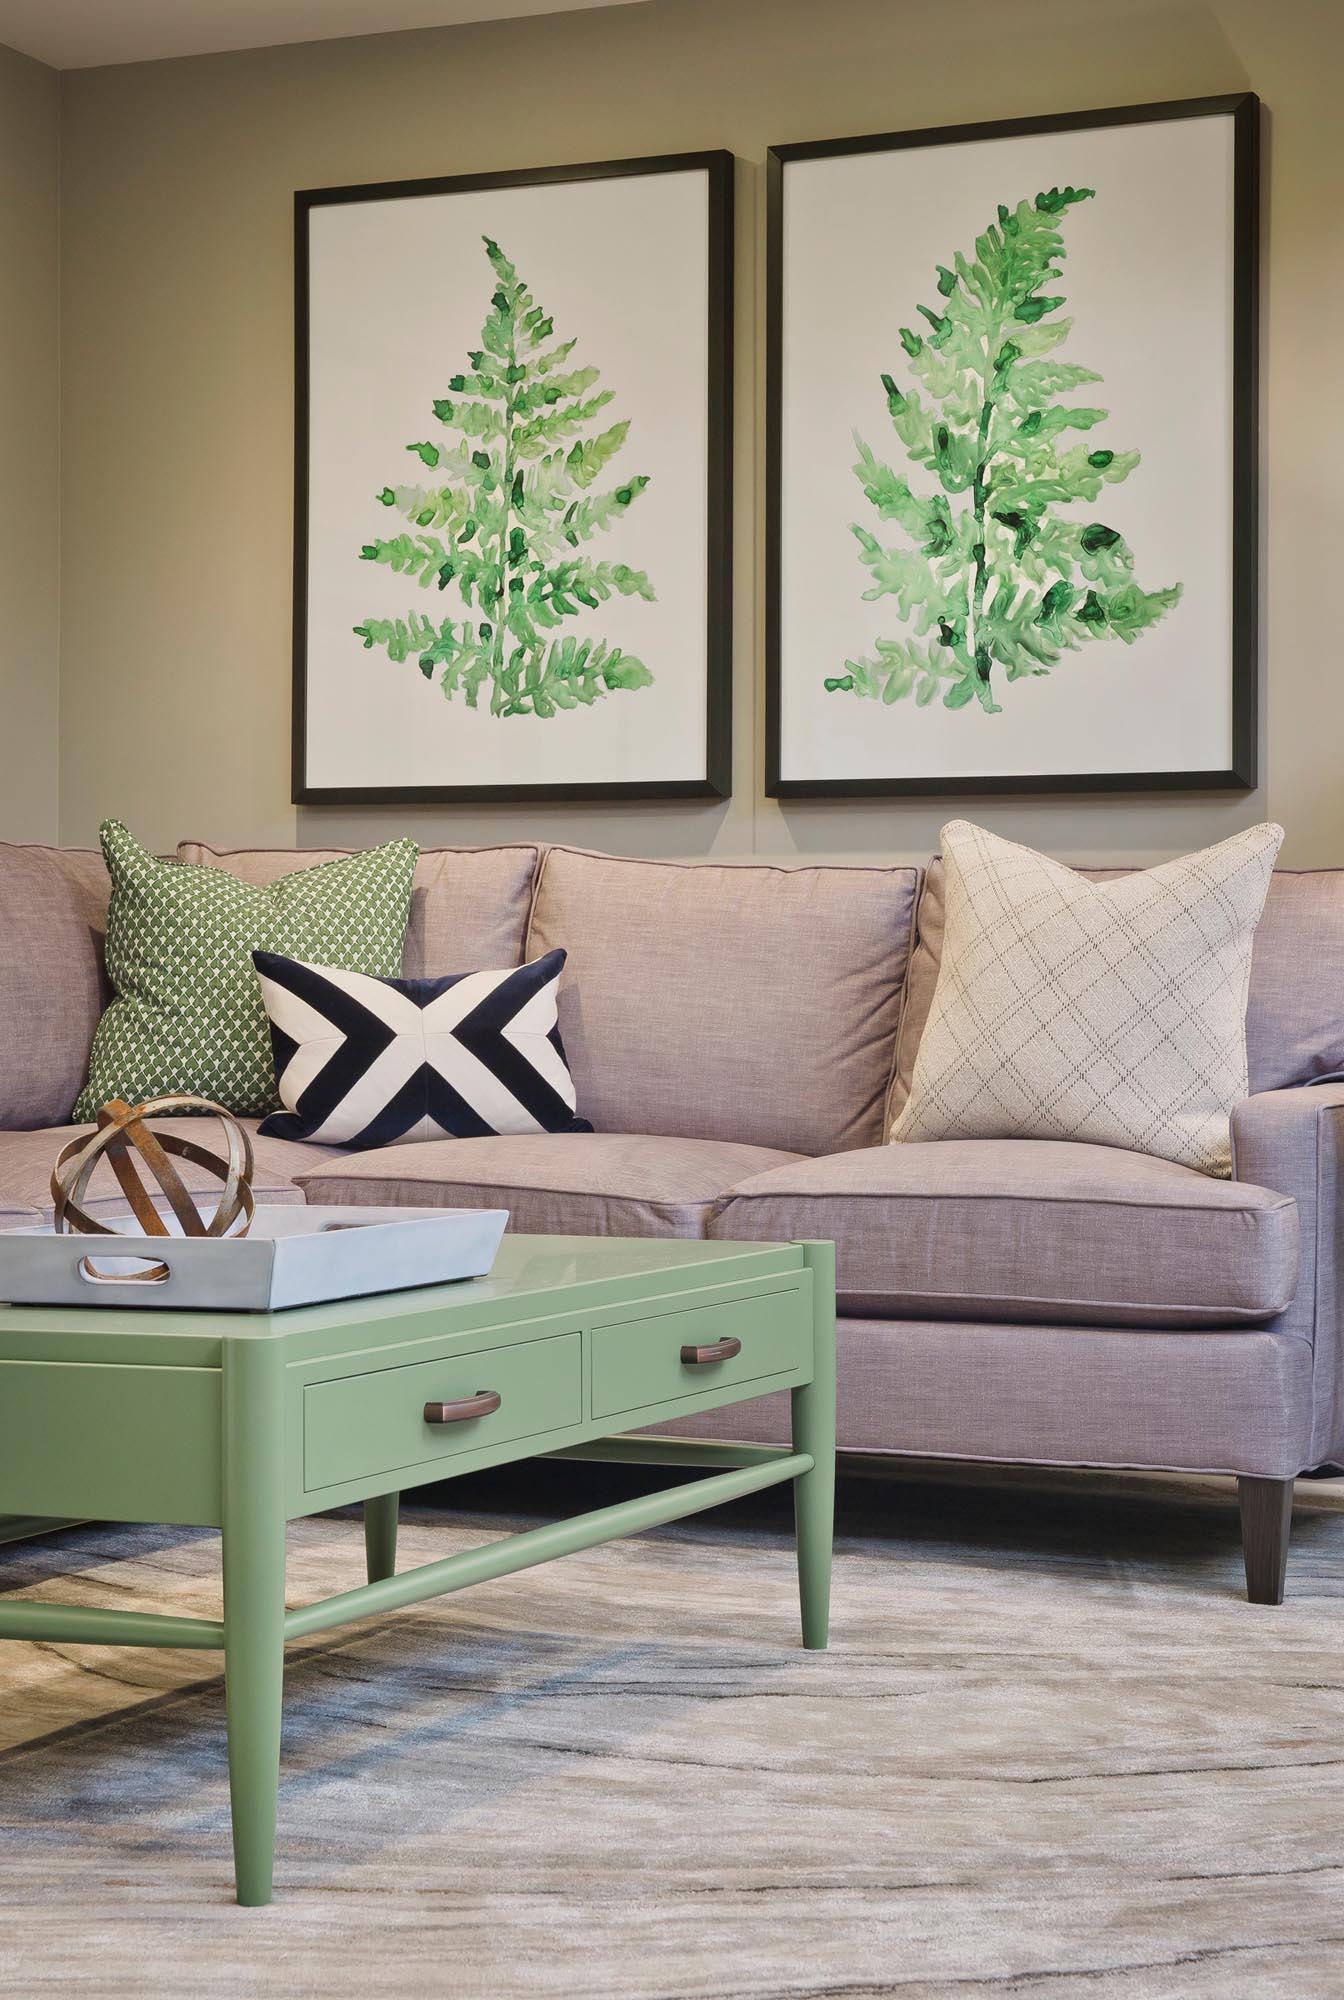 Light violet soft sectional sofa paintings of fern plants hanging above